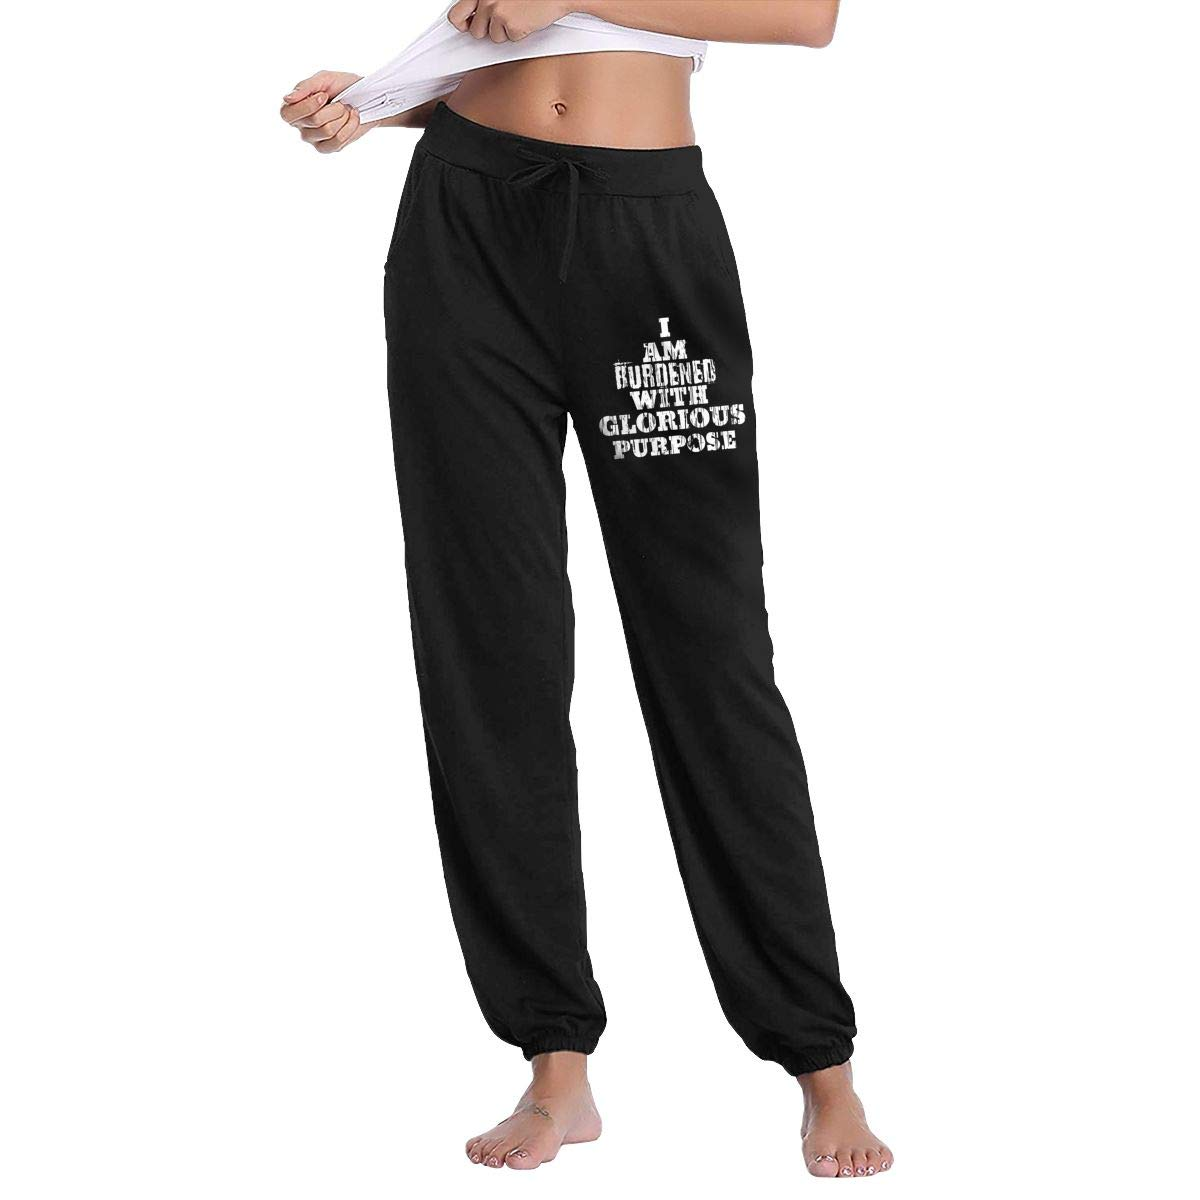 Black YOOJPC6 Women's I Am Burdened with Glorious Purpose Sweatpants with Pockets Gym Jogging Pants